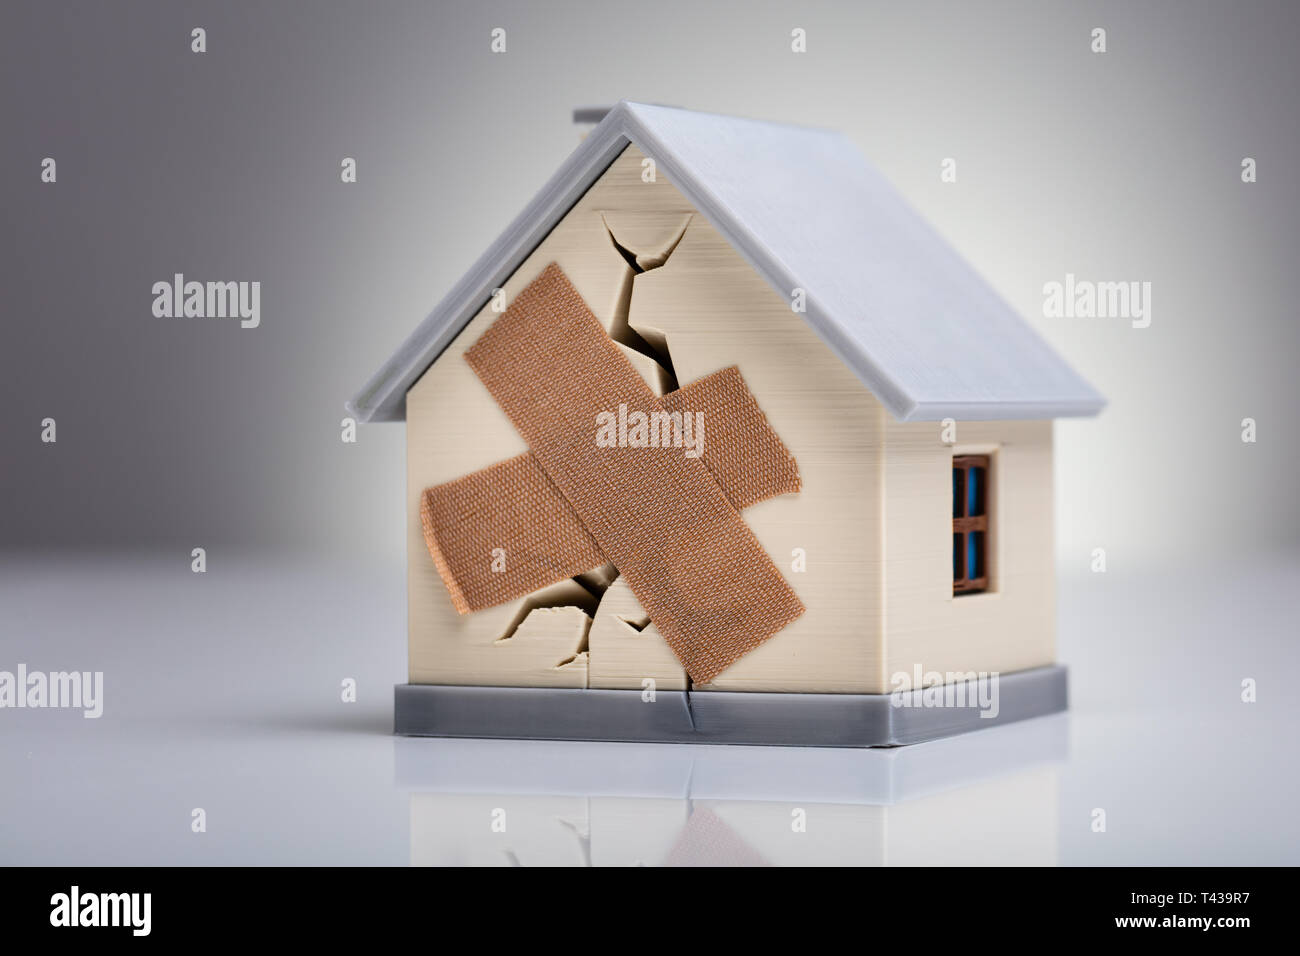 Broken House Model With Crossed Band Aid On Desk - Stock Image